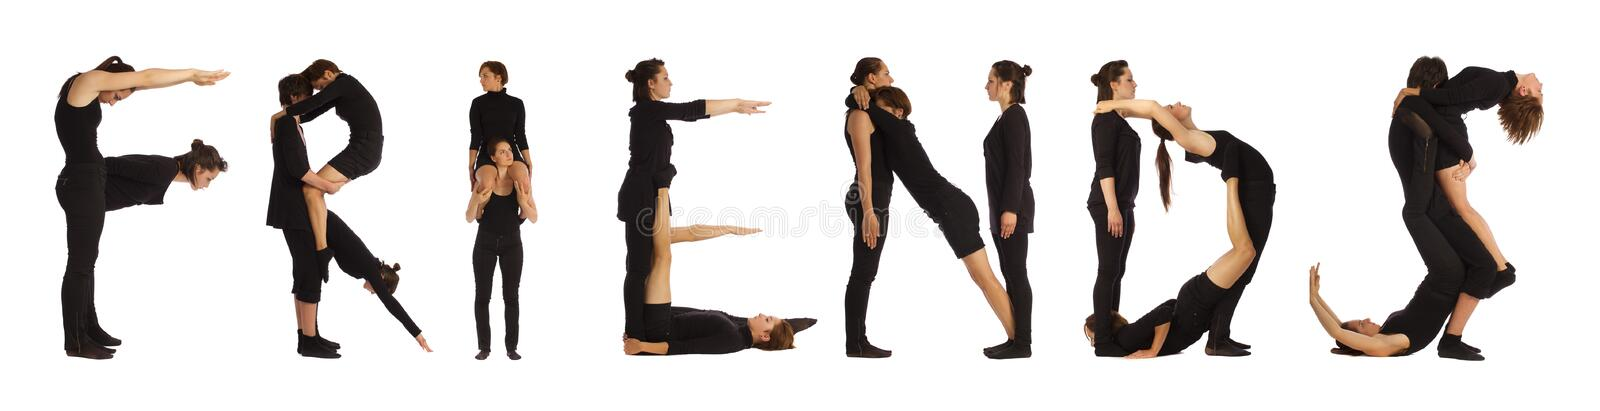 Black dressed people forming FRIENDS word royalty free stock images